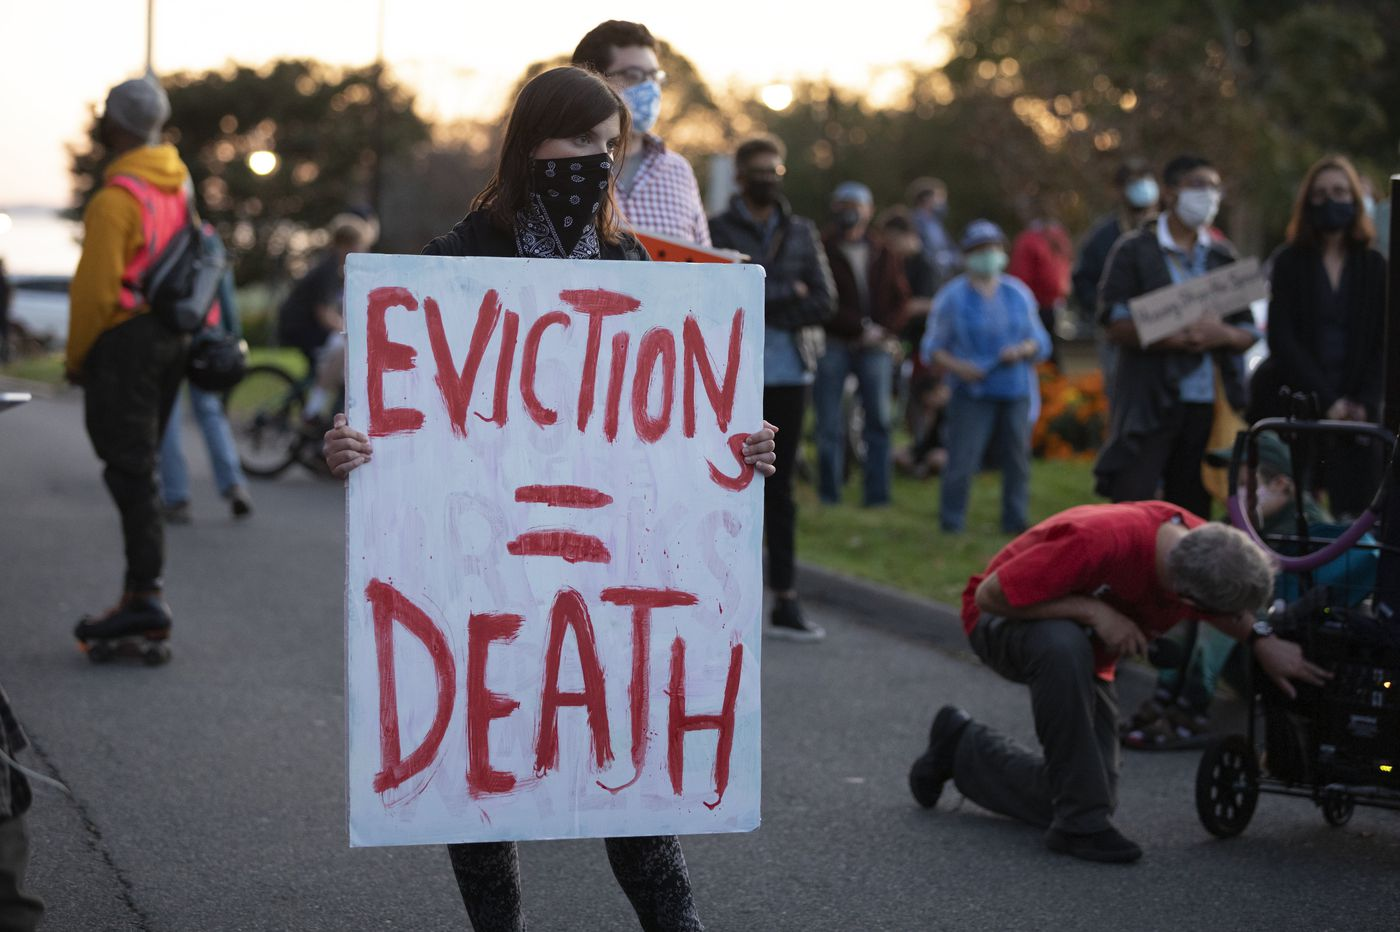 Eviction is the New Year's gift that no one deserves but millions could get | Editorial